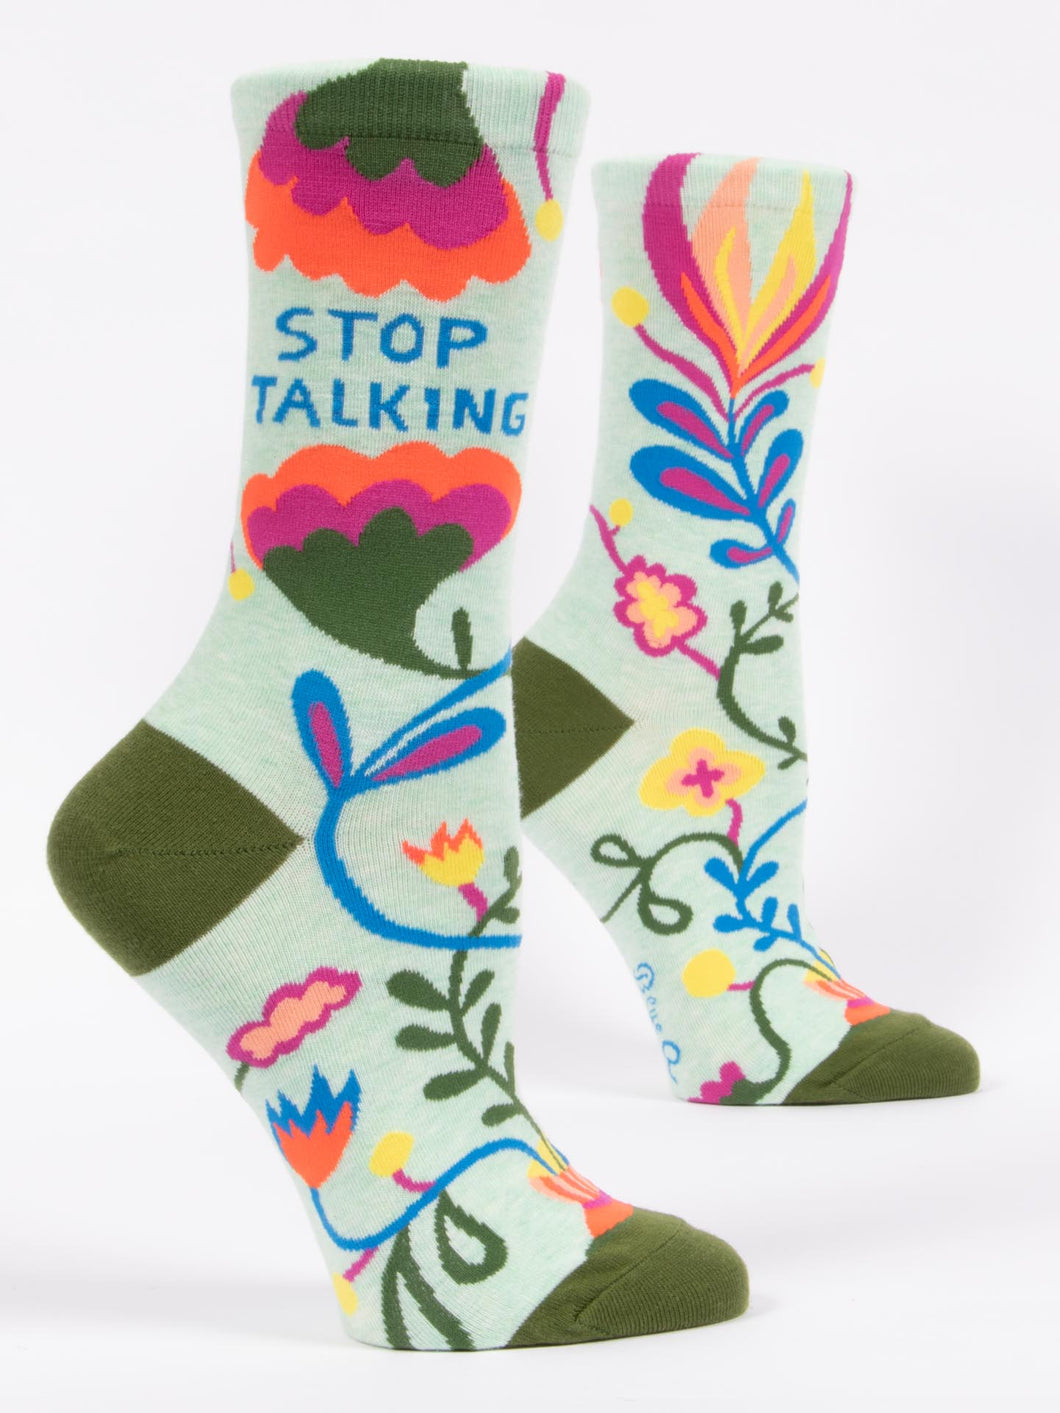 STOP TALKING - WOMEN CREW SOCKS